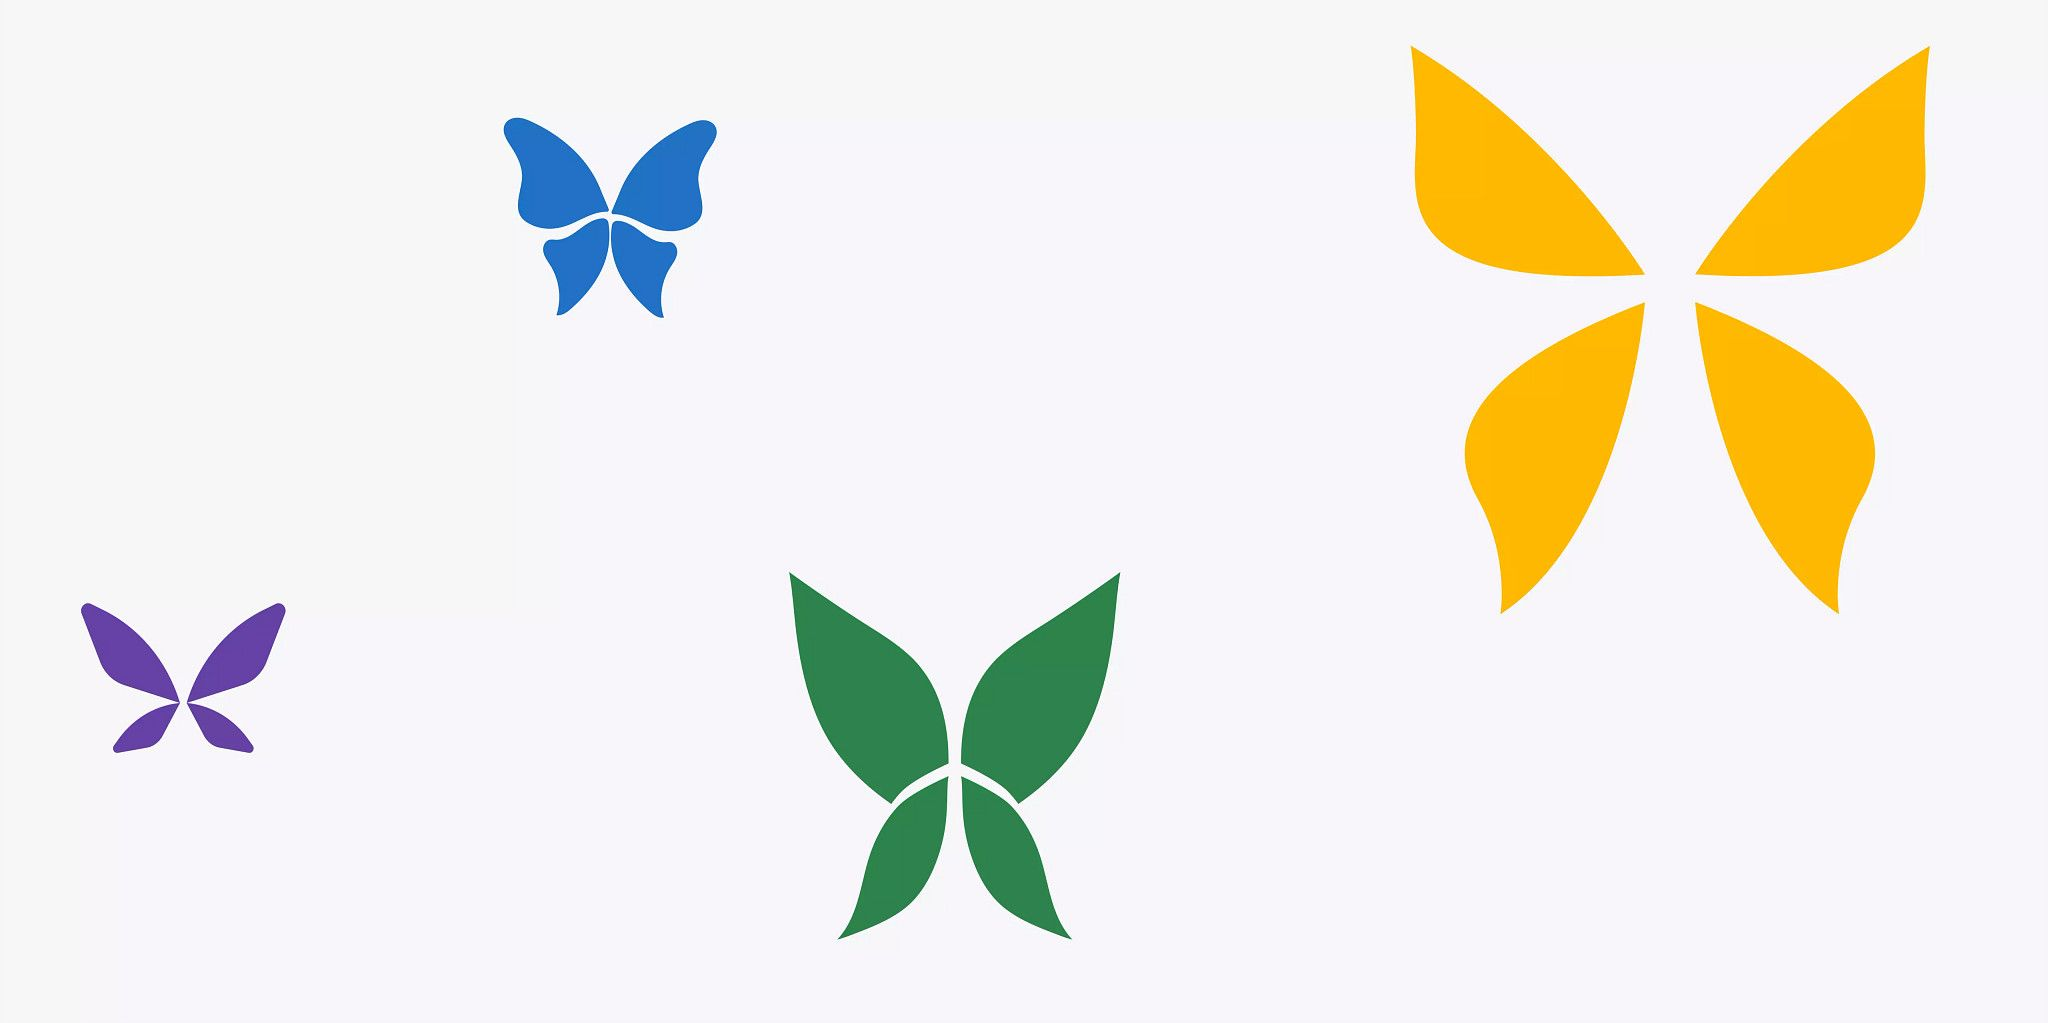 Four illustrated butterflies in solid colors (purple, blue, green, and yellow) of varying sizes on an off-white background.